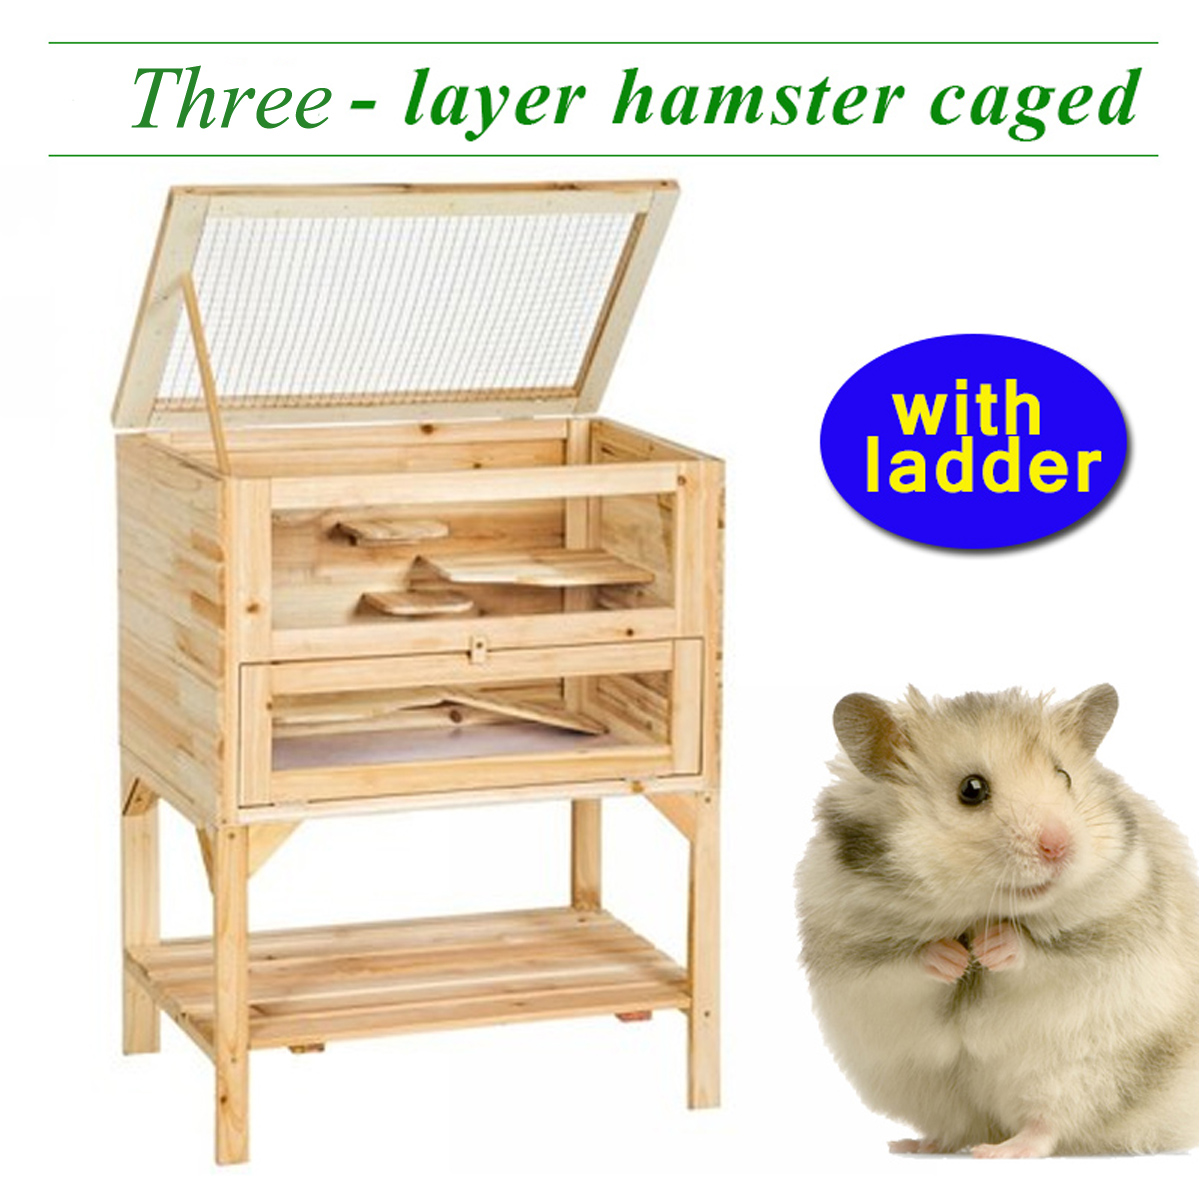 3 Tiers Layler Wooden Pet Hamster Cage Home With Ladder Natural Large Space Animals Mouse House Play Toys